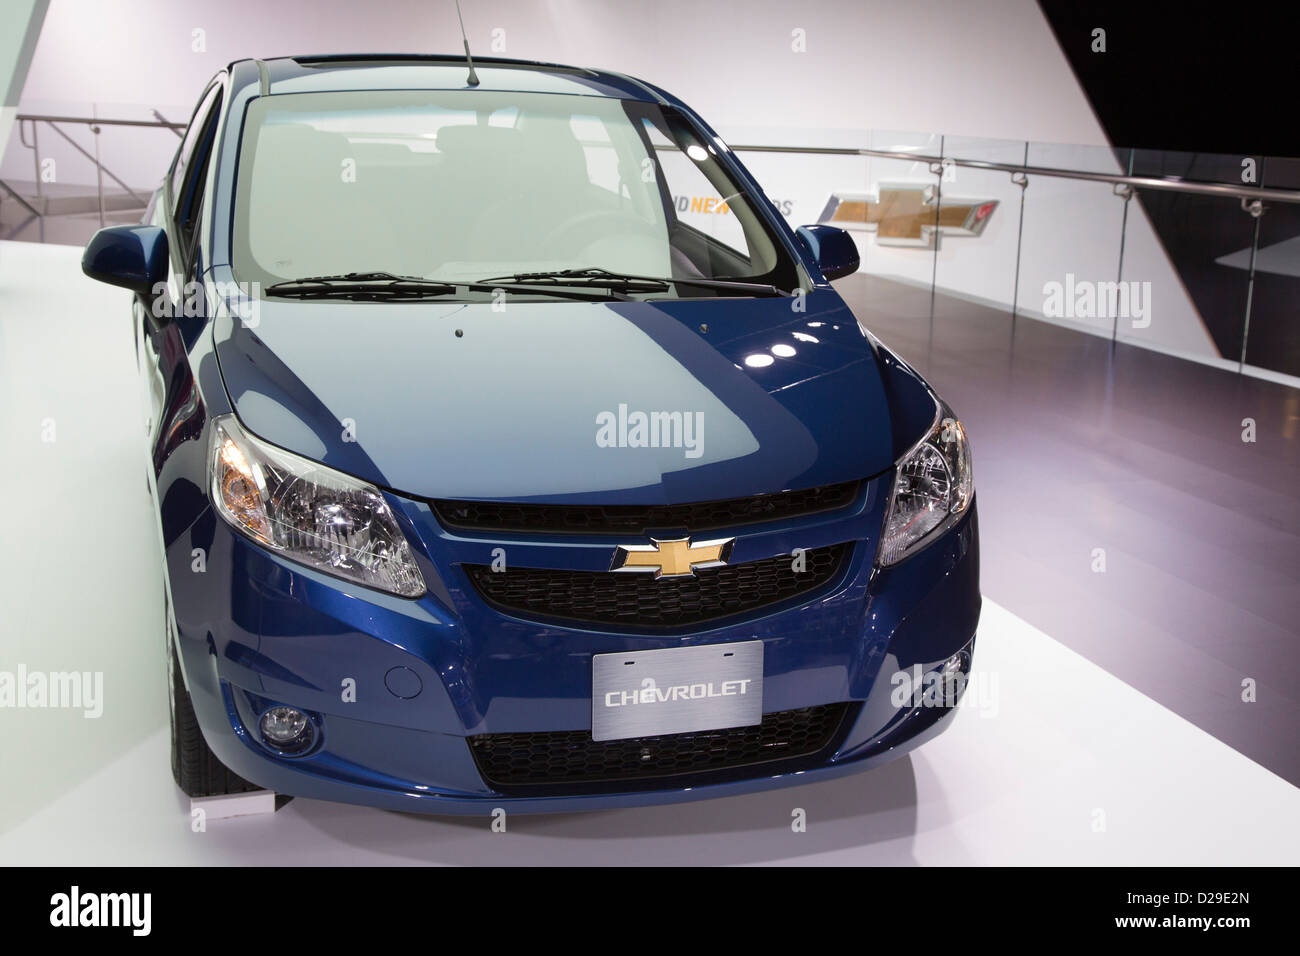 The Chevrolet Sail on display at the North American International Auto Show. - Stock Image